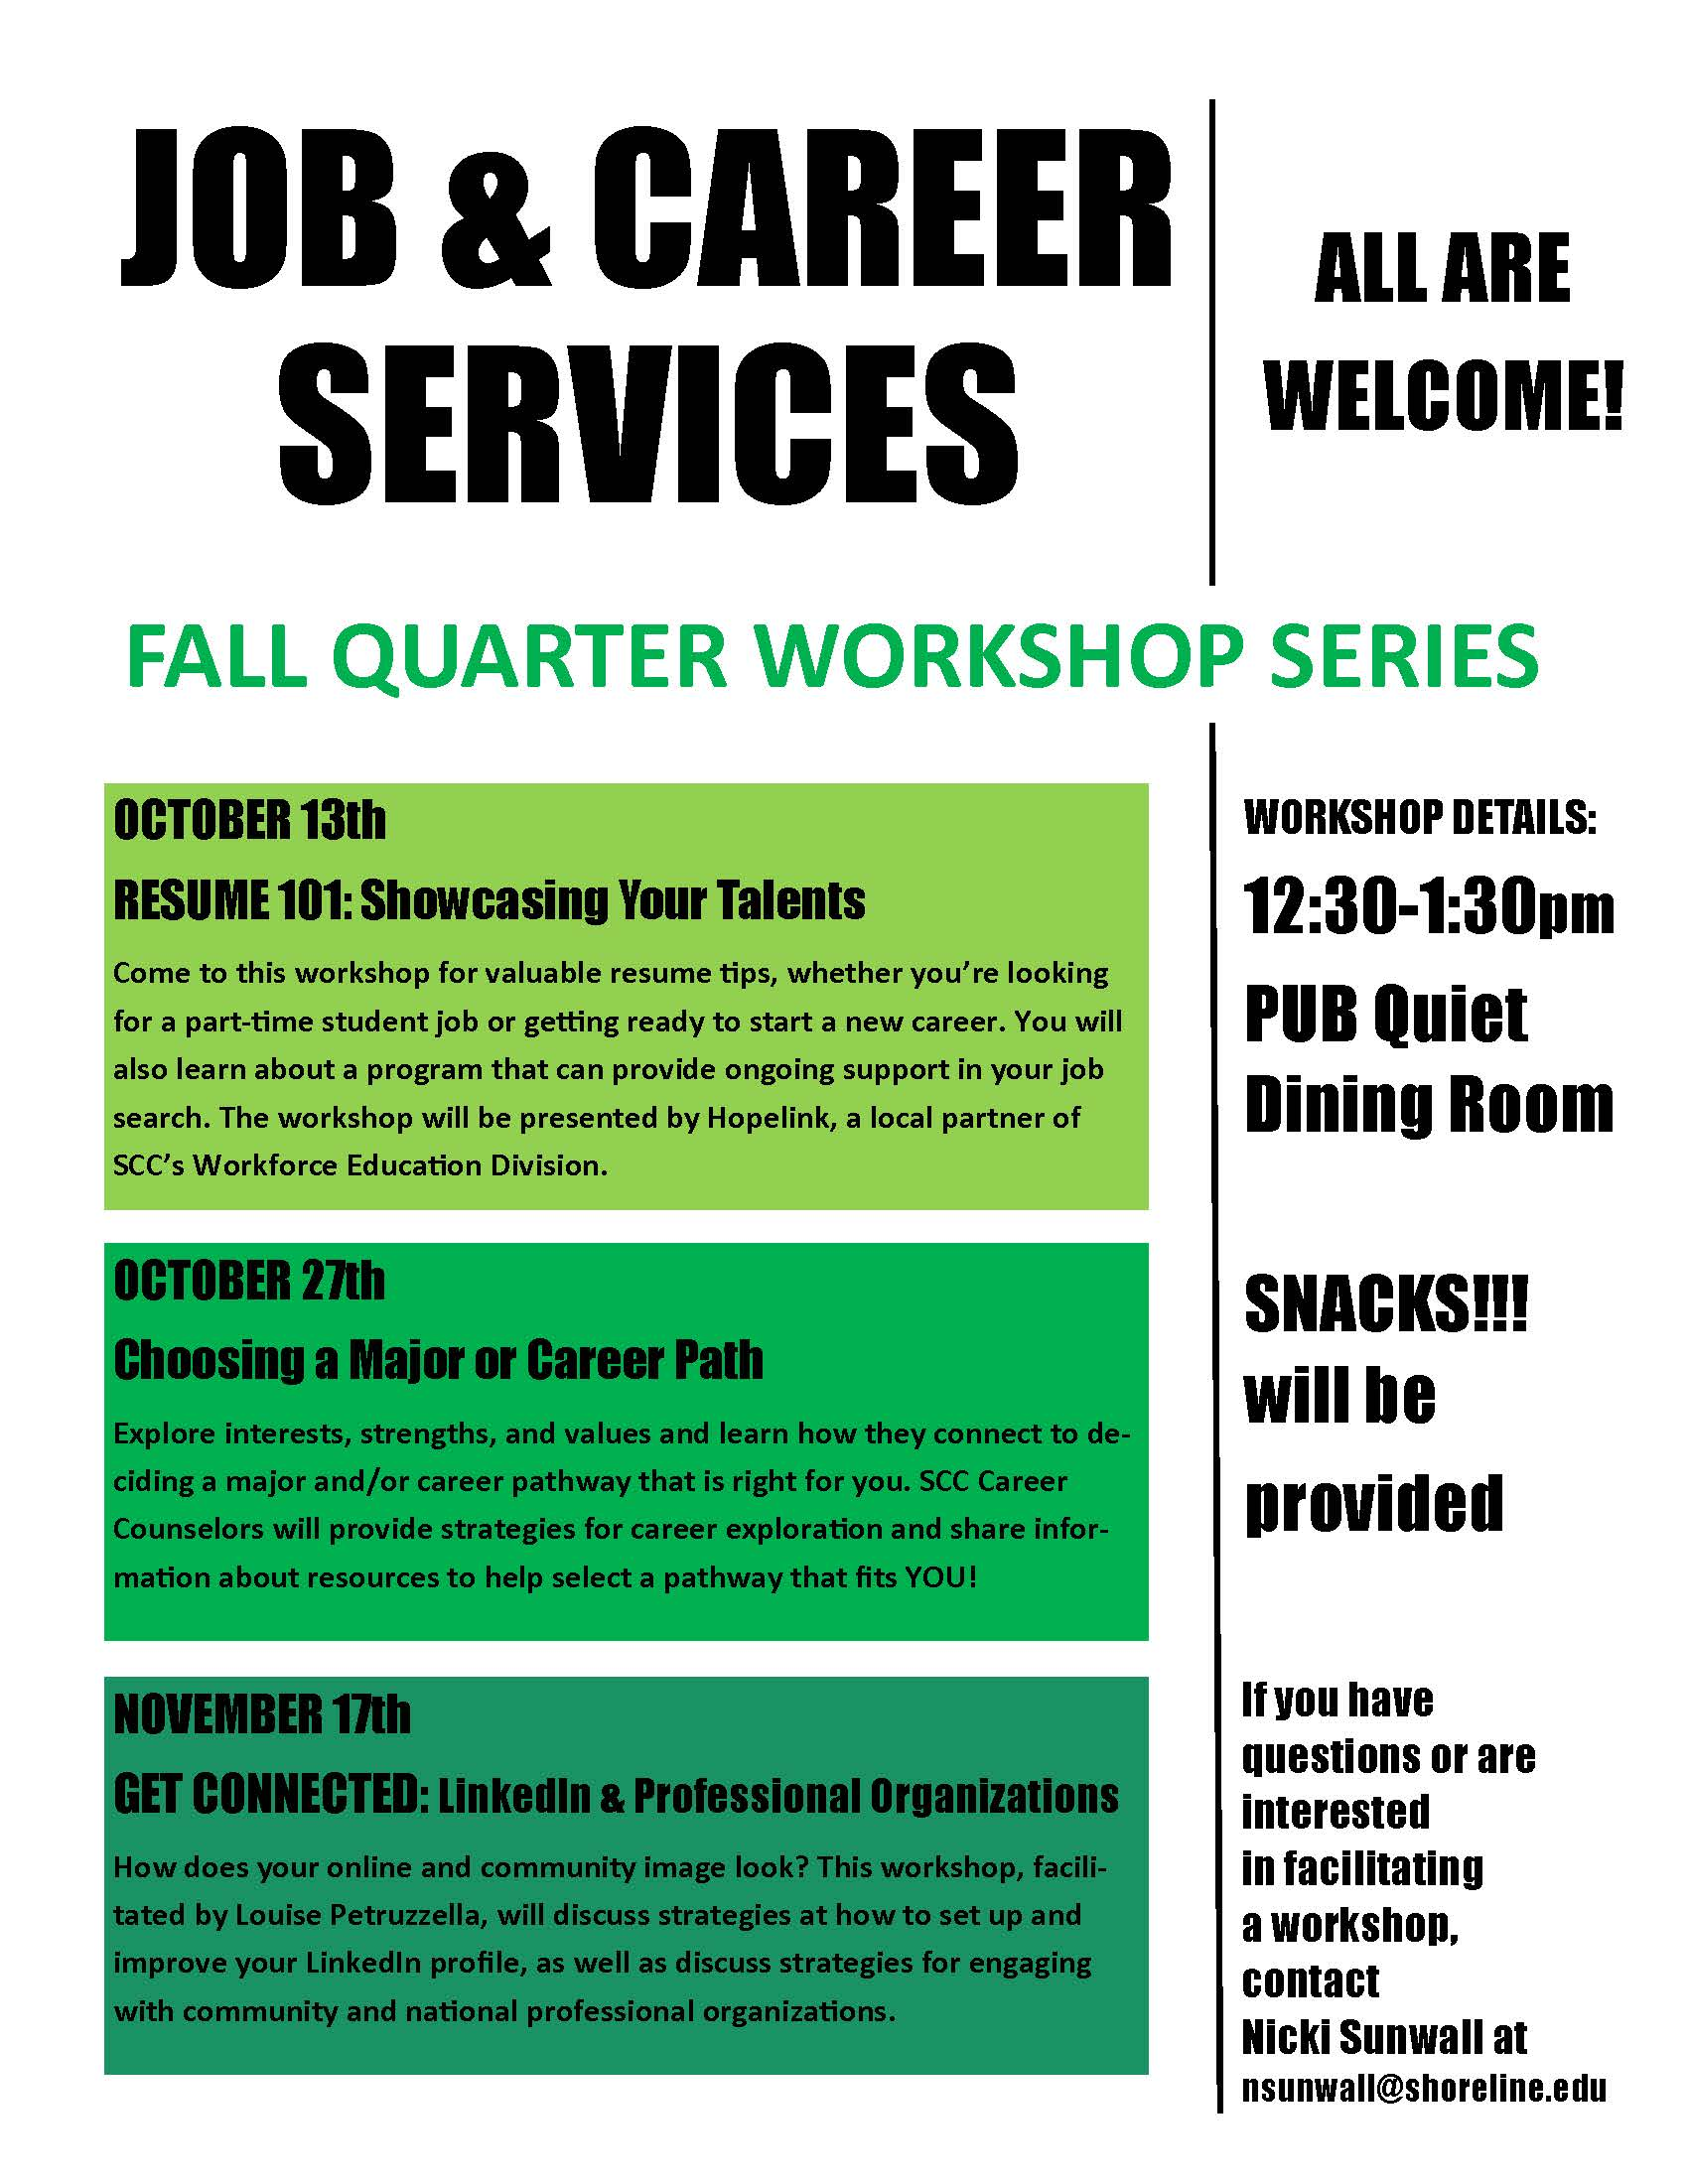 Job & Career Workshops - FALL FLYER 2015 jpeg